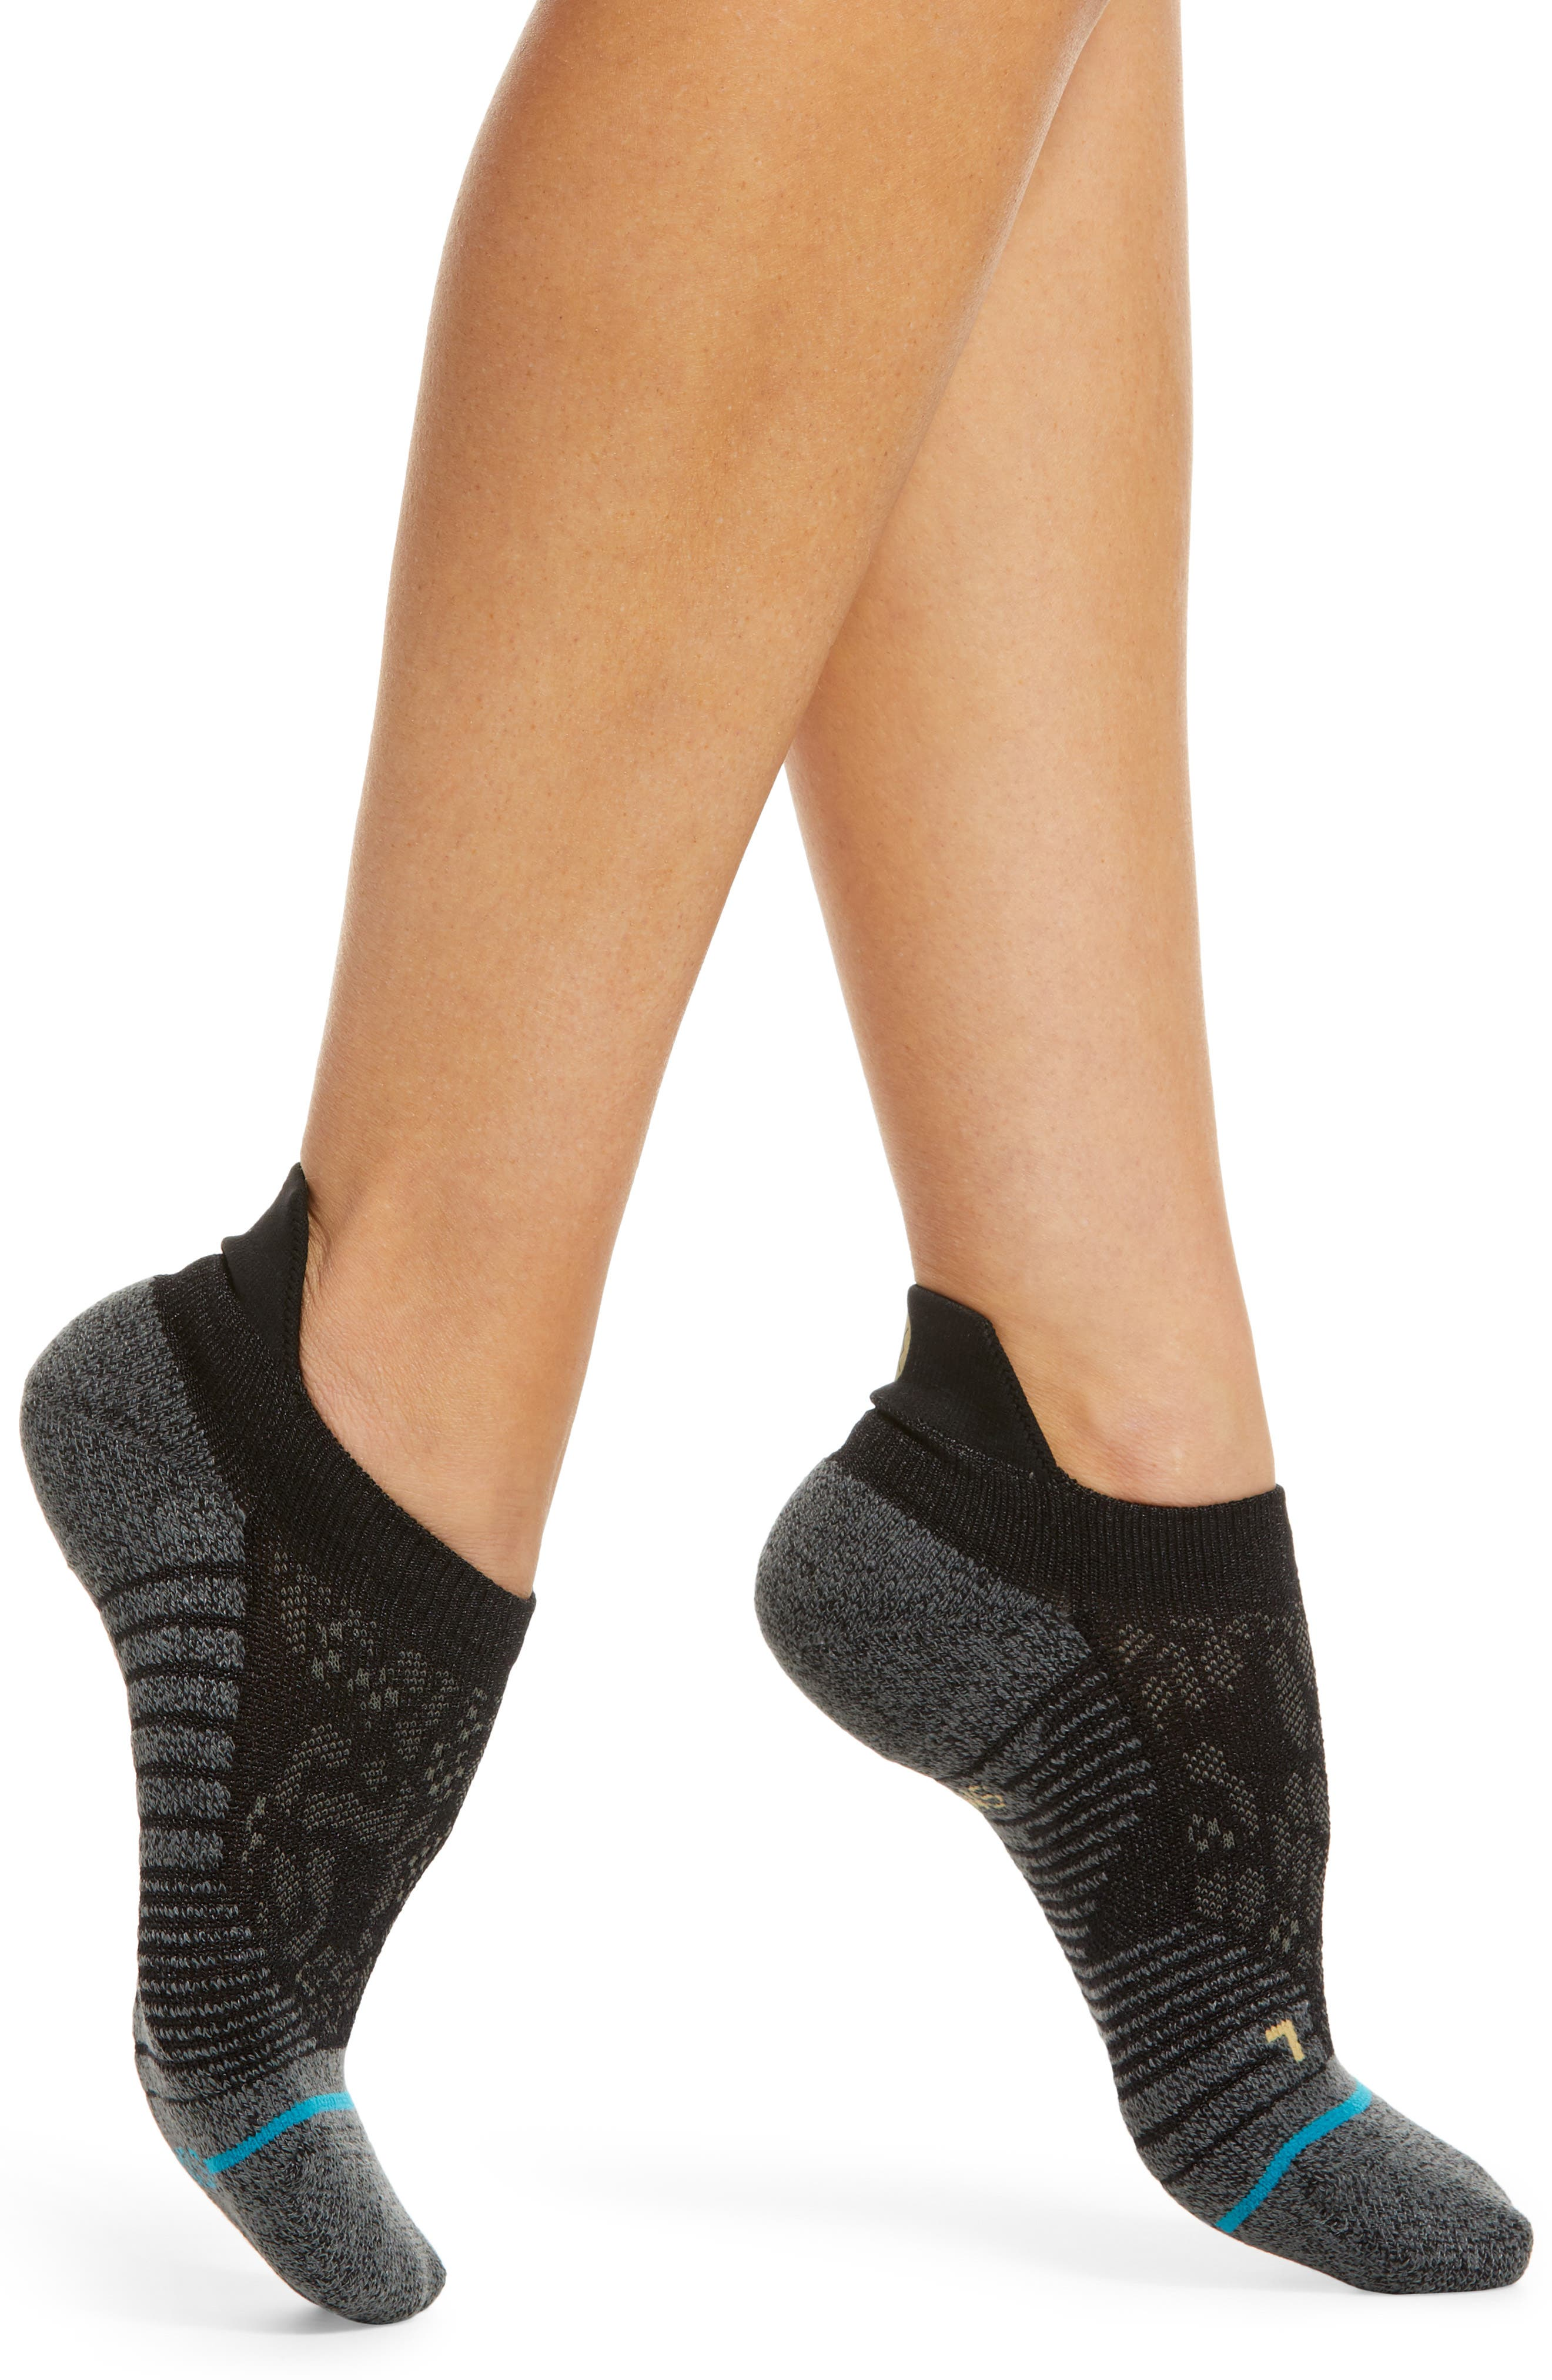 YellowNEW Stance Womens Low Ankle Sock Stance Womens Buzzchiller Boot Socks